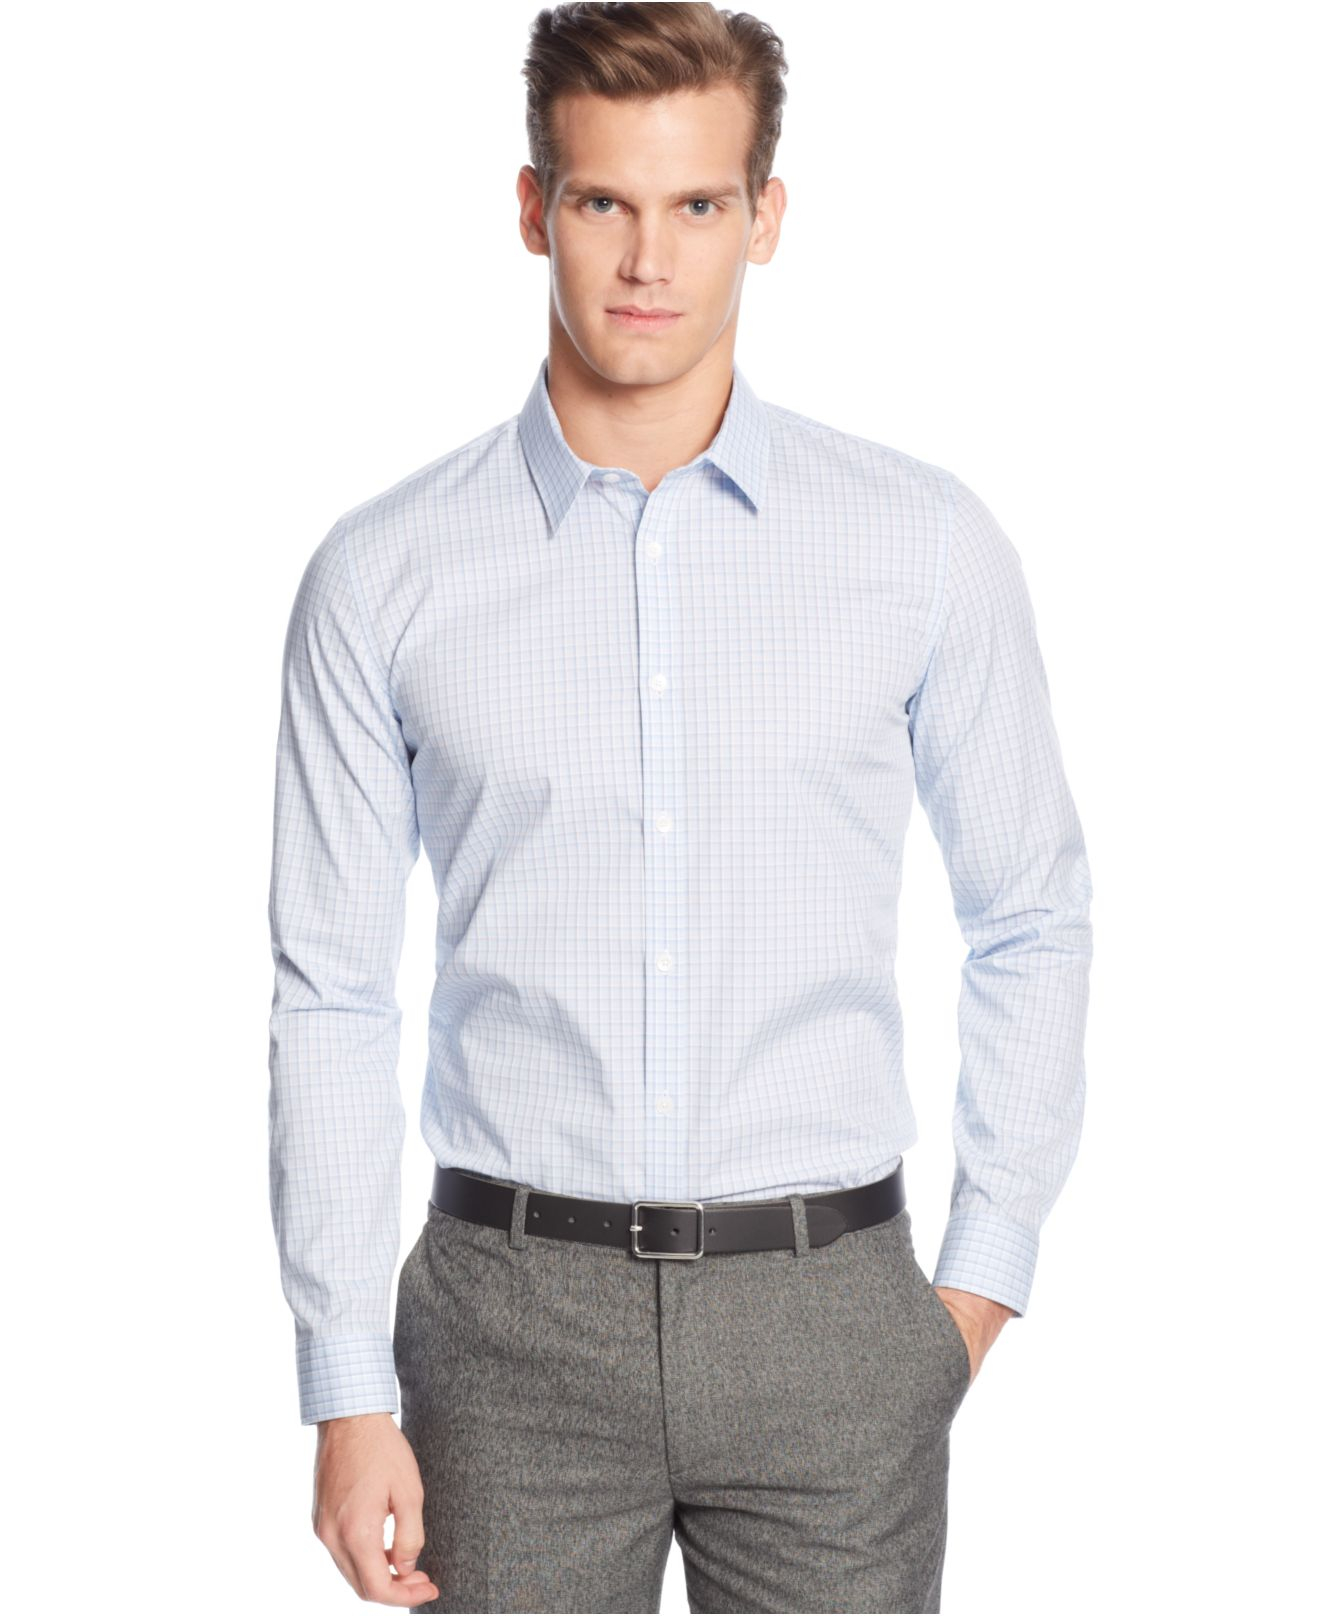 Calvin klein men 39 s infinite cool non iron slim fit shirt for Calvin klein athletic fit dress shirt